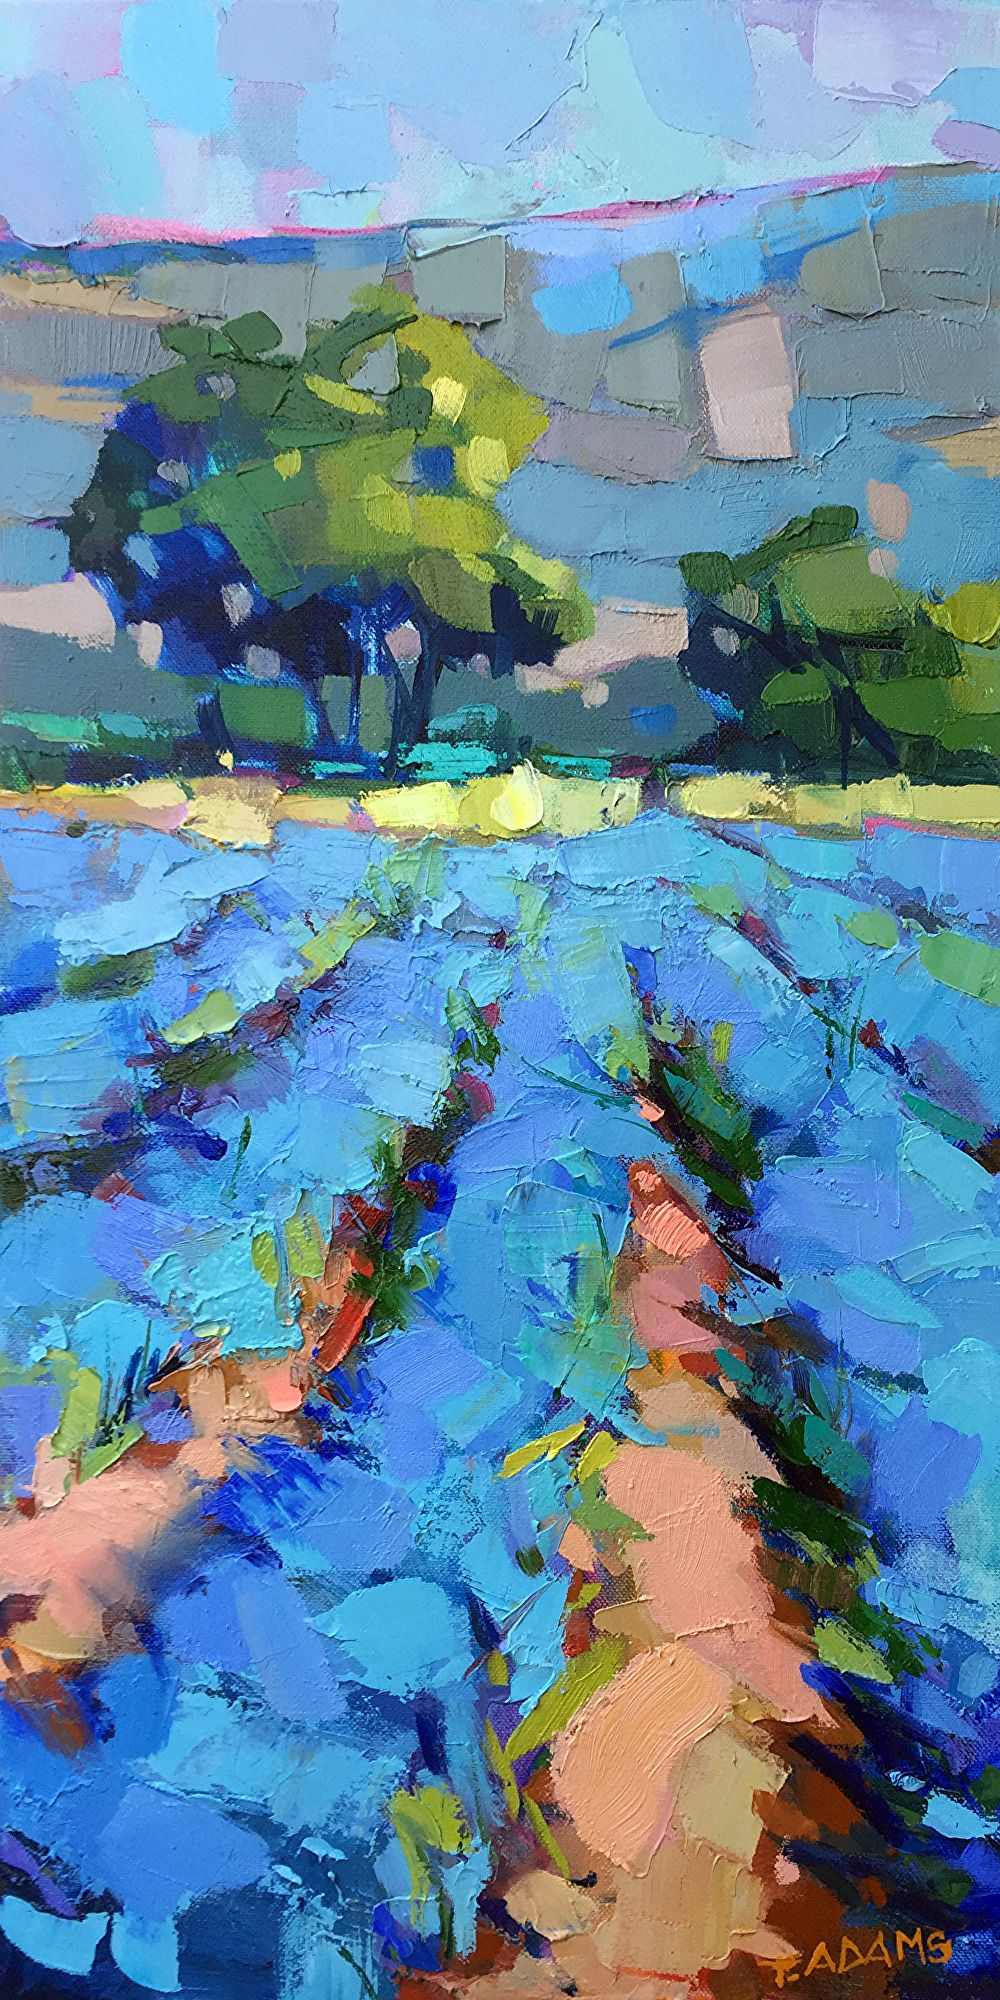 Looking Down The Rows By Trisha Adams Oil 24 X 12 X 1 5 In 2020 Abstract Art Landscape Landscape Art Landscape Paintings